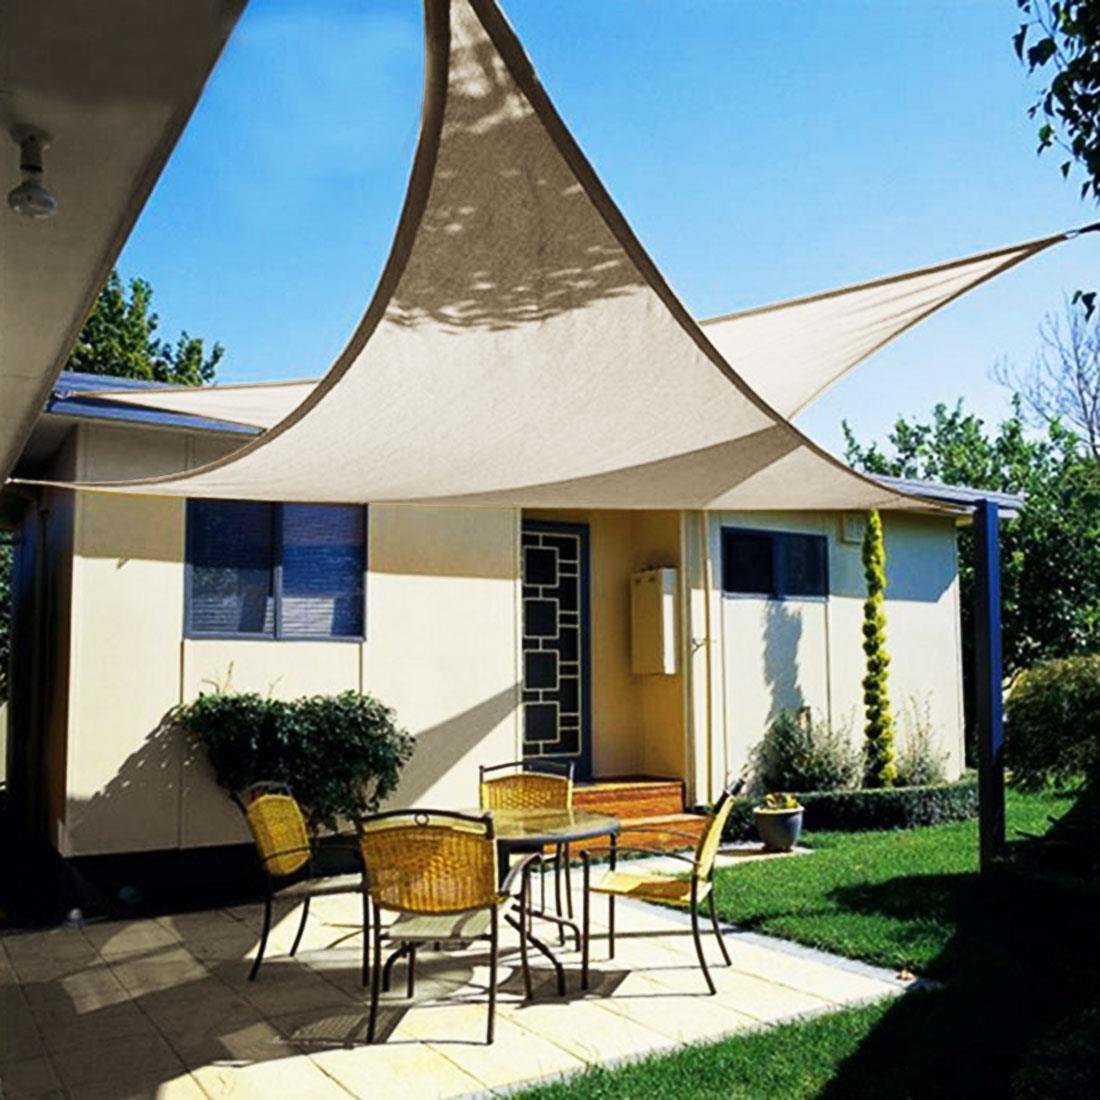 Quictent-12-18-20-FT-Triangle-Sun-Shade- & Quictent 12/18/20 FT Triangle Sun Shade Sail Patio Pool Top Canopy ...